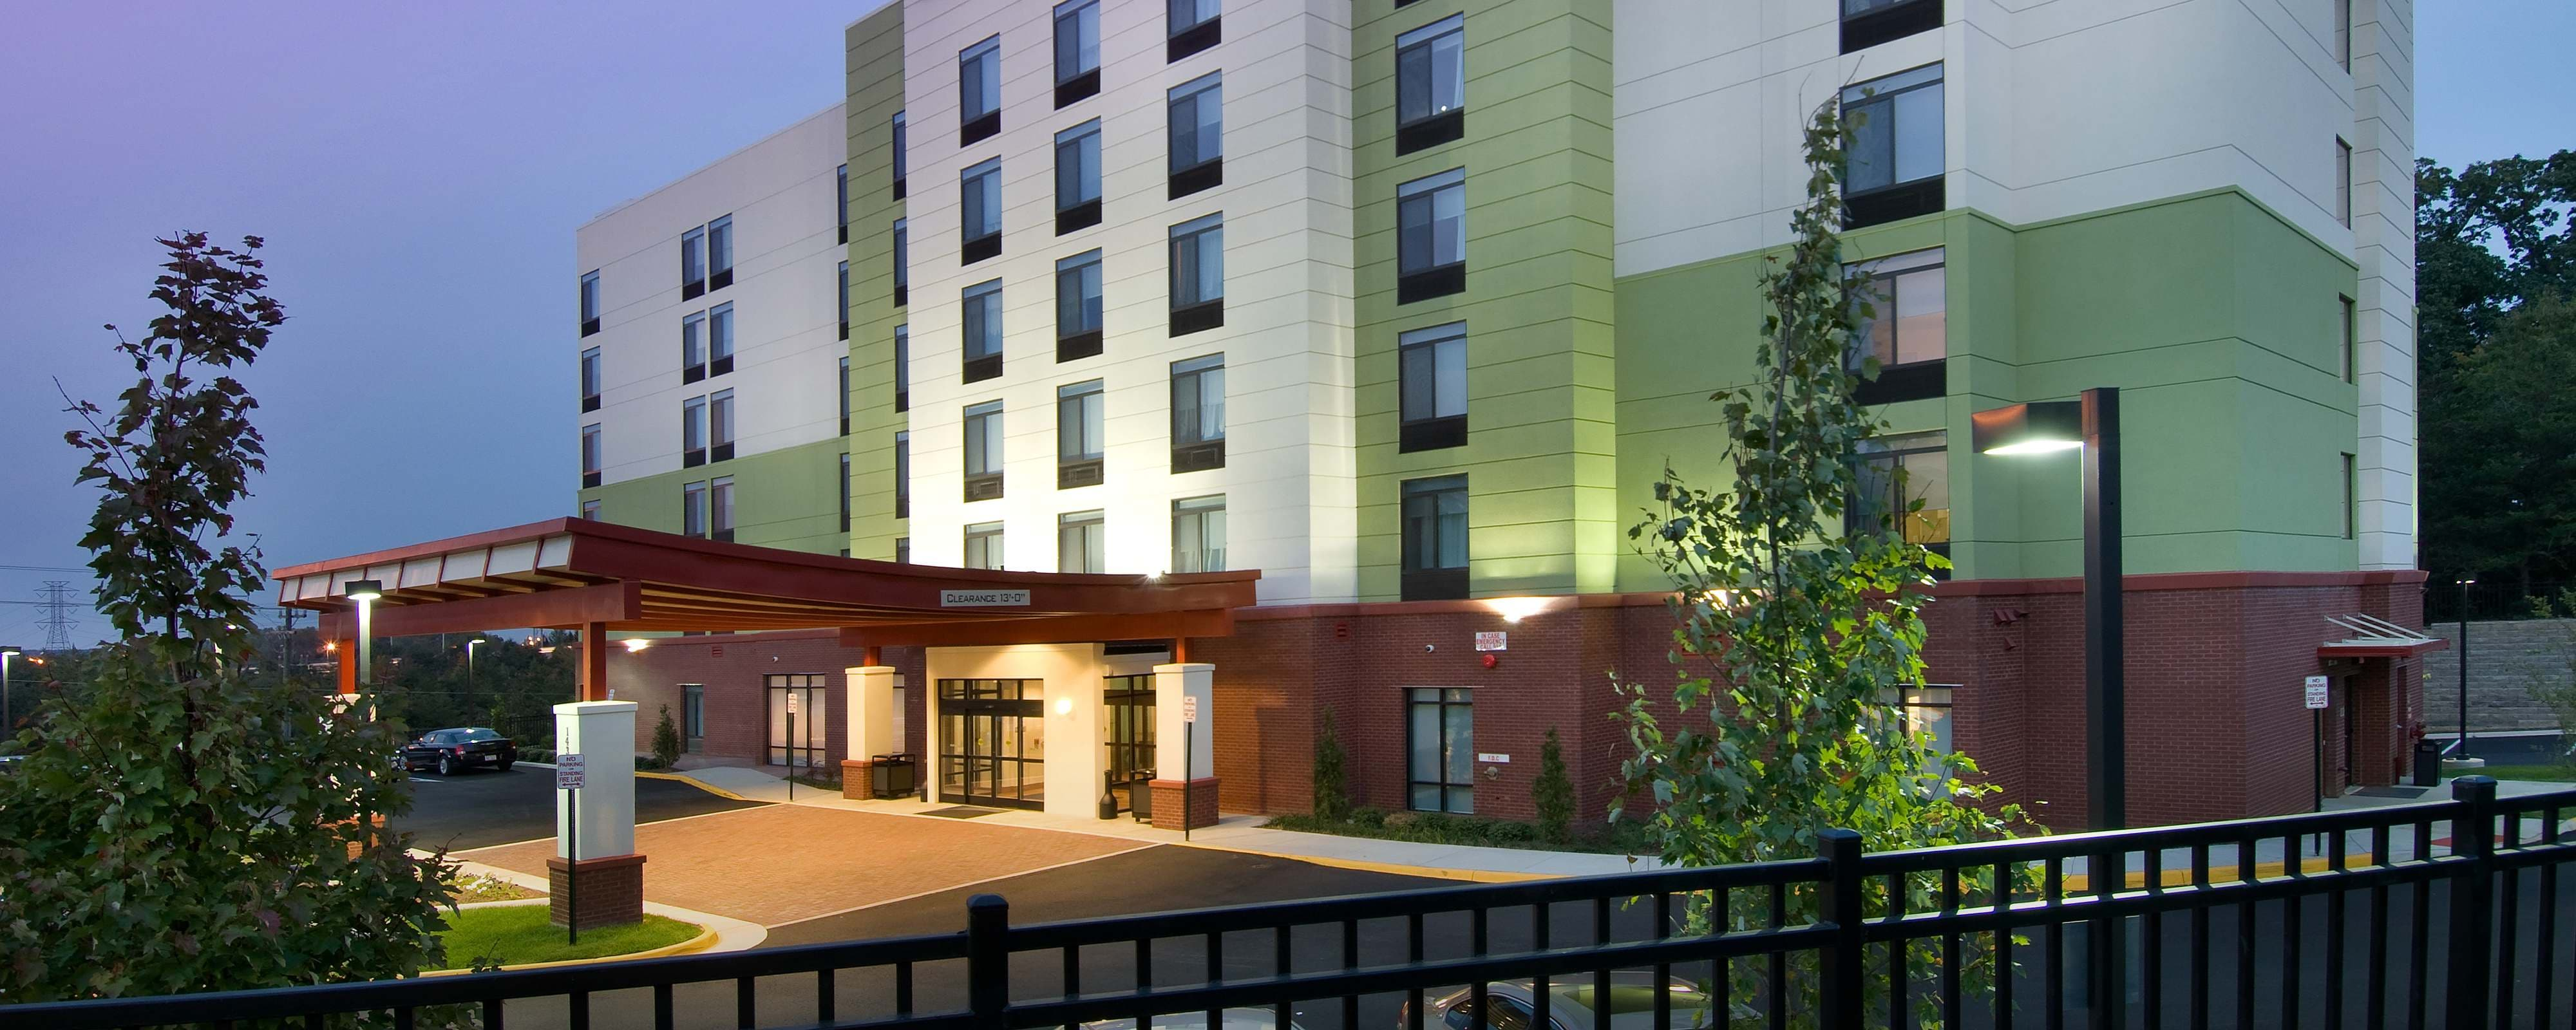 Hotels in Woodbridge, Virginia